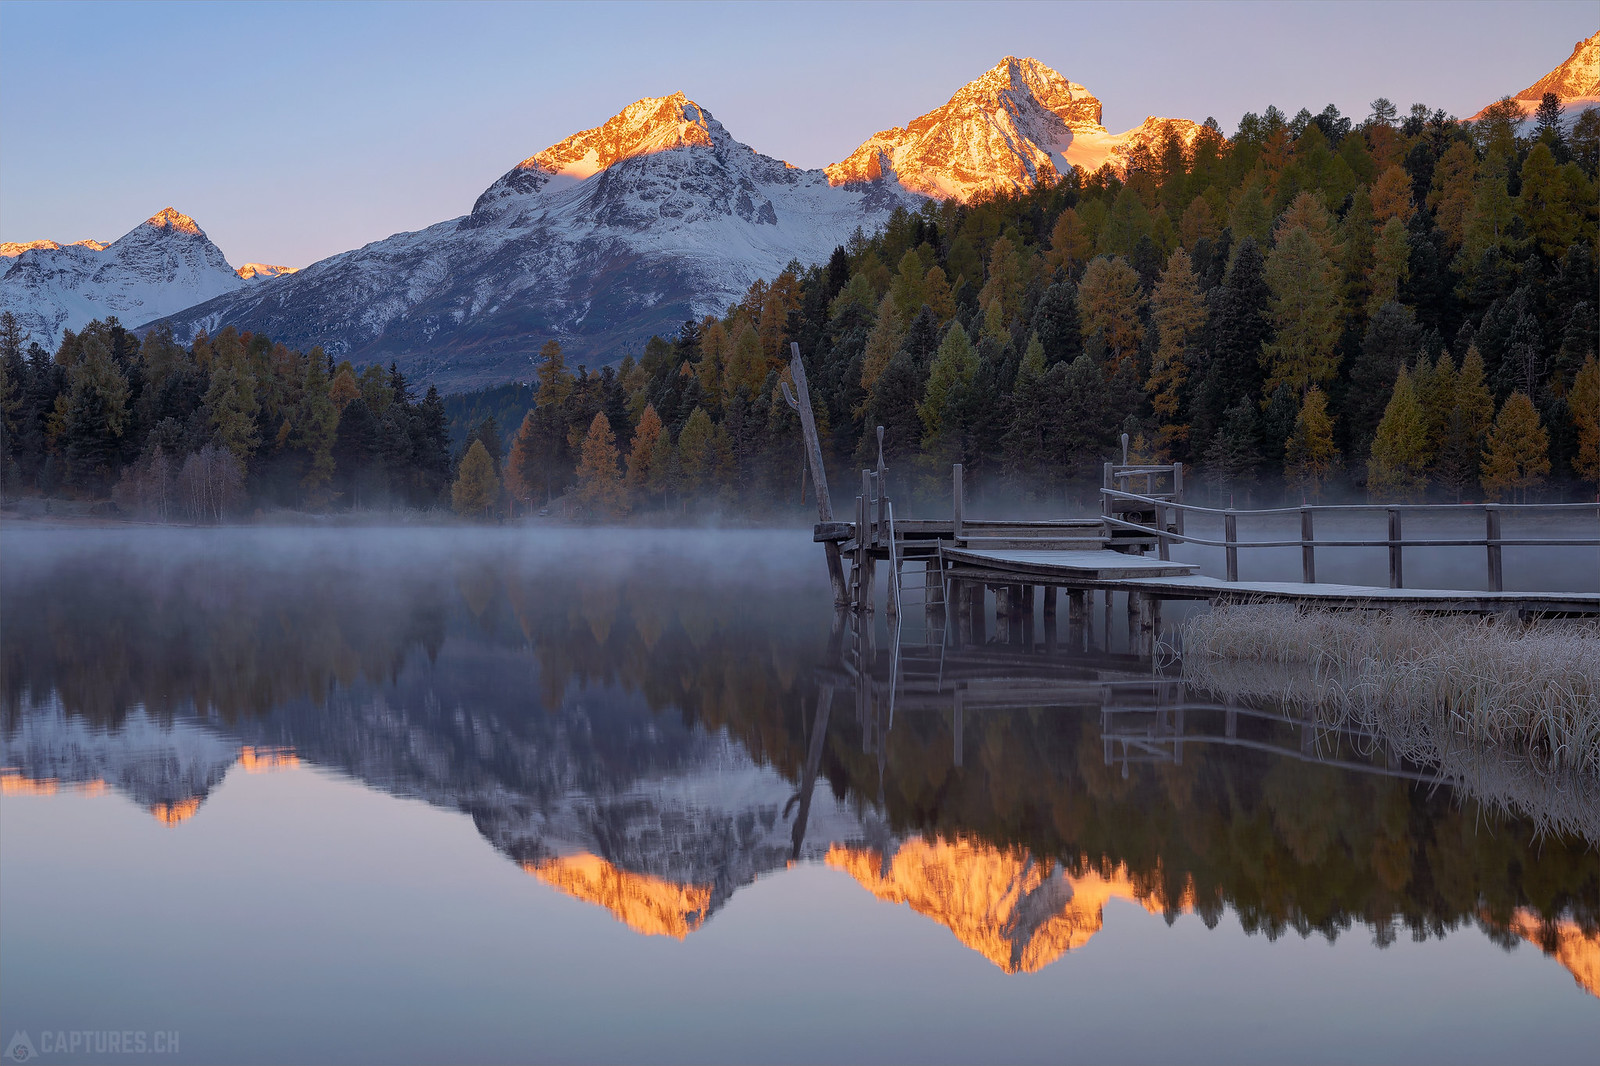 First light at the mountains - Stazersee